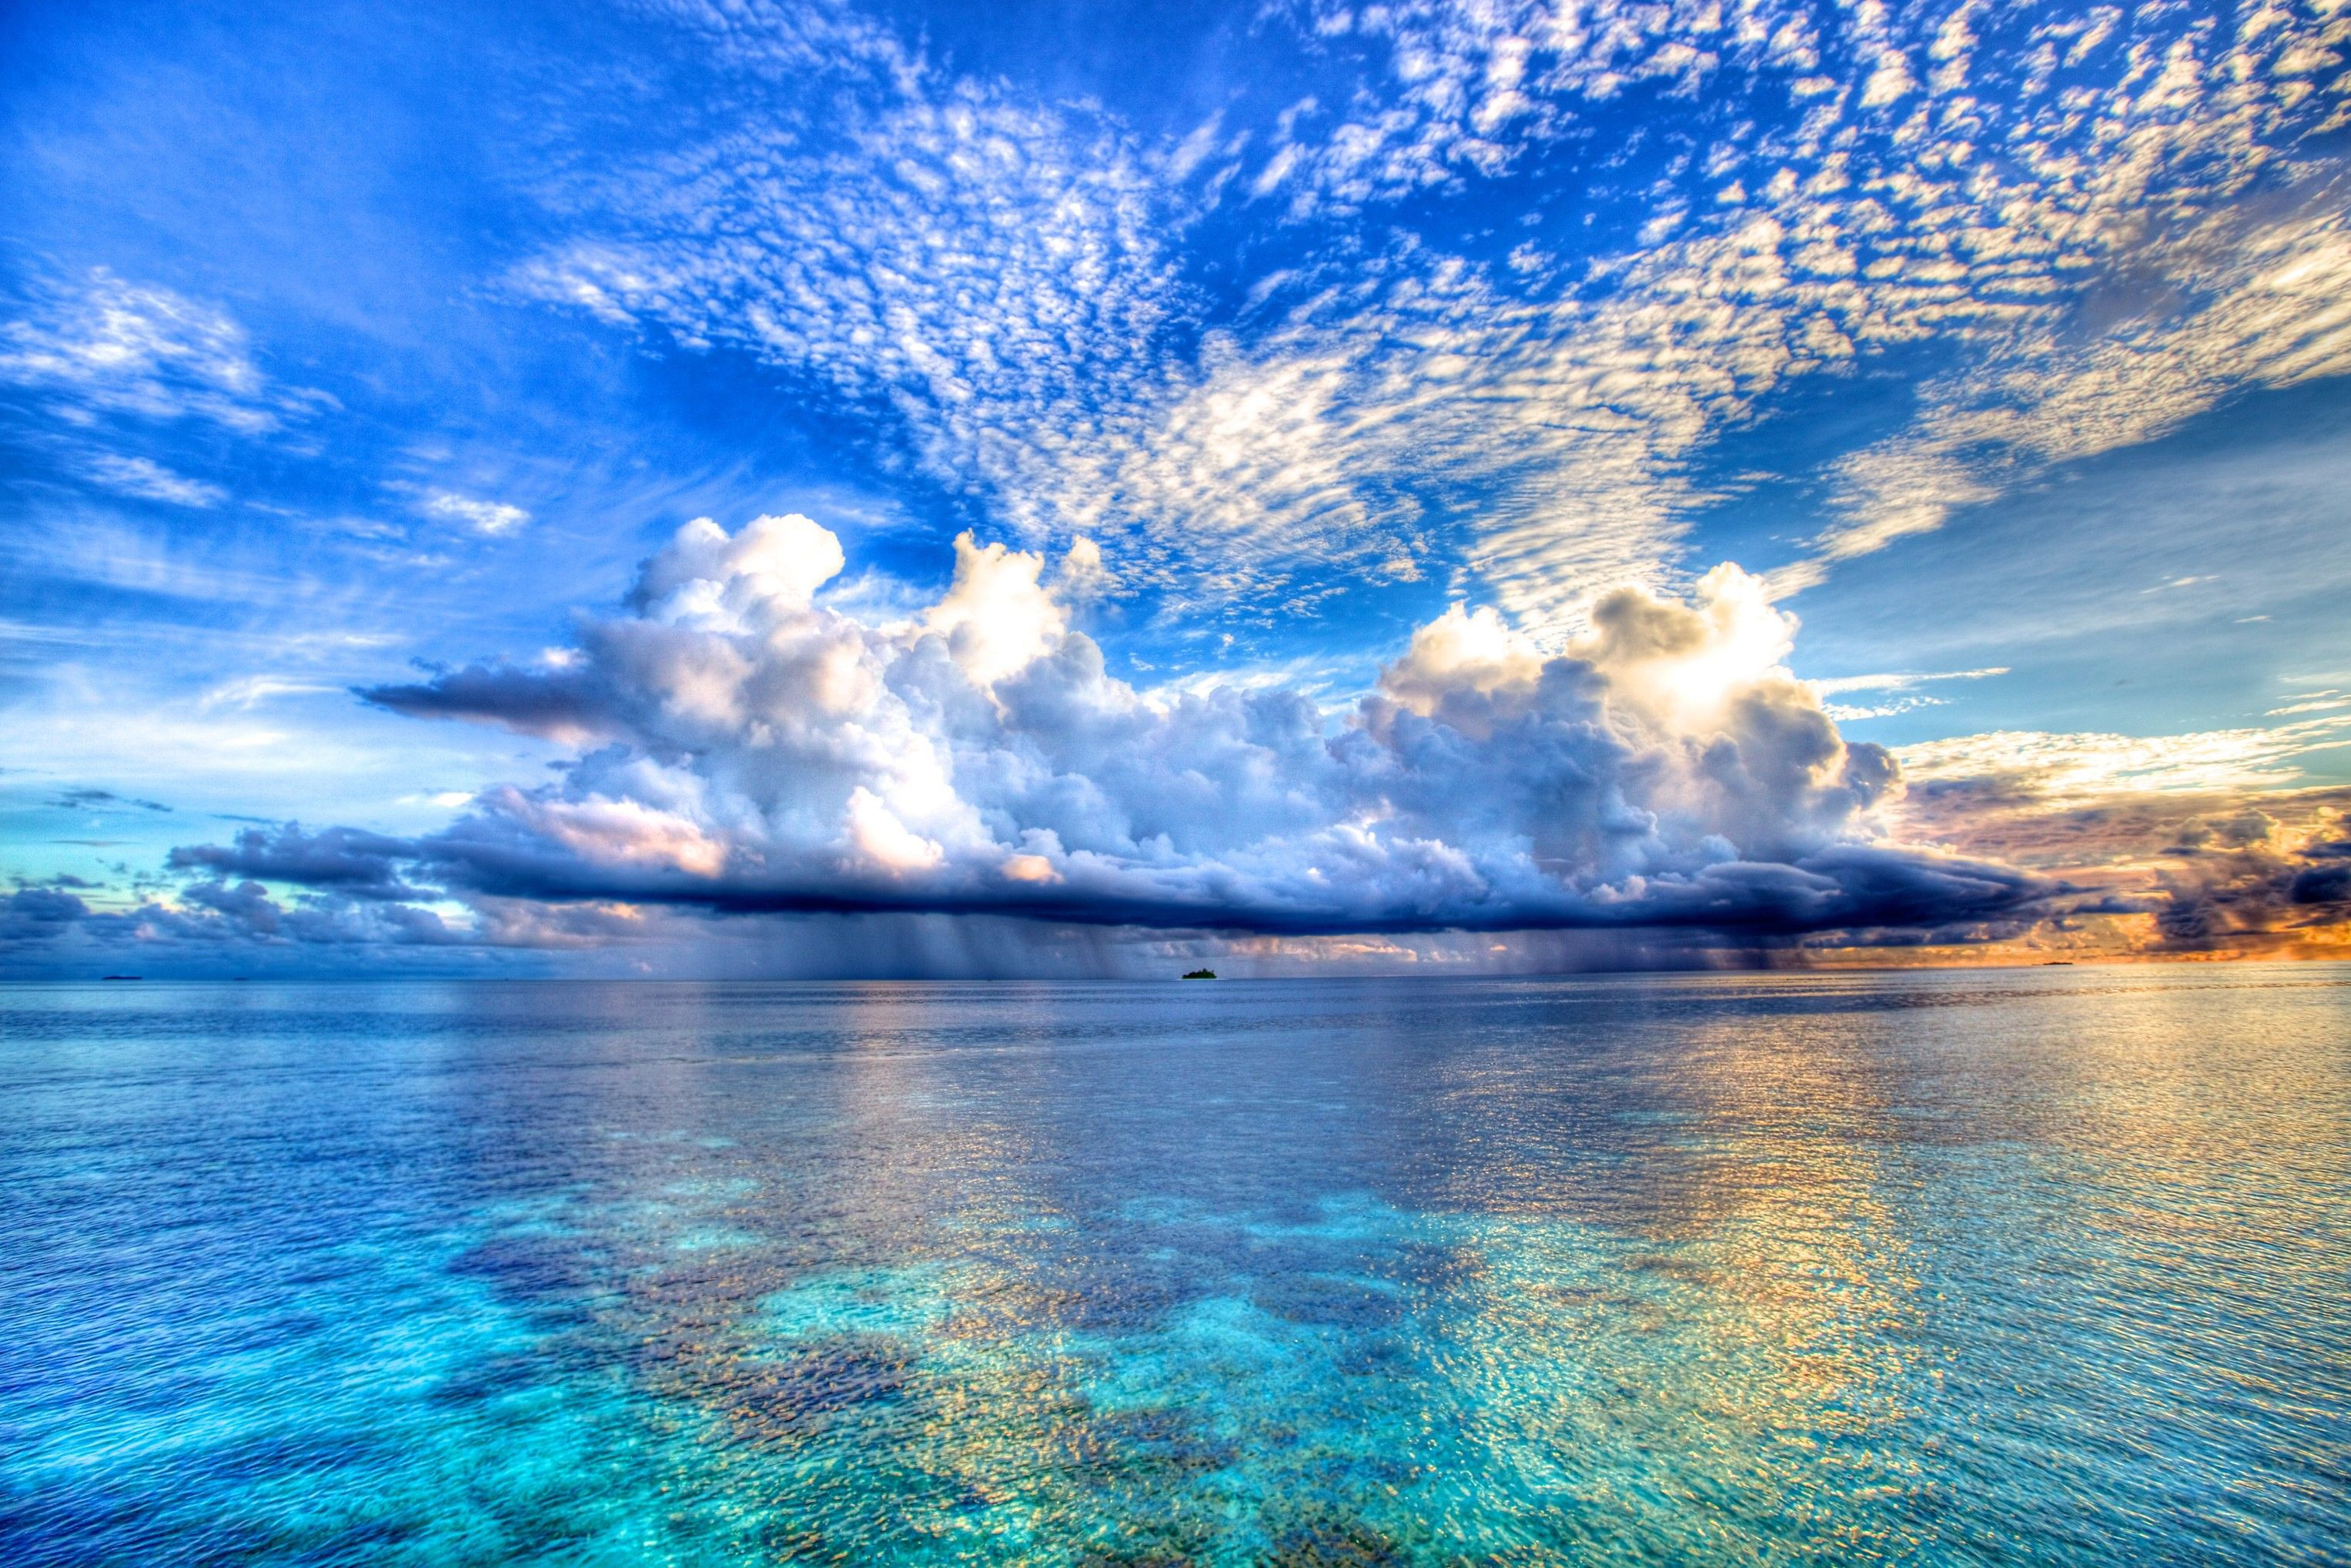 Wet Sky Life Colors Photography Beautiful Ocean Blue Sea Tropical Fantasy Reflect Clouds Nature Water Colorful Beach Reflecti Beautiful Nature Scenery Pictures